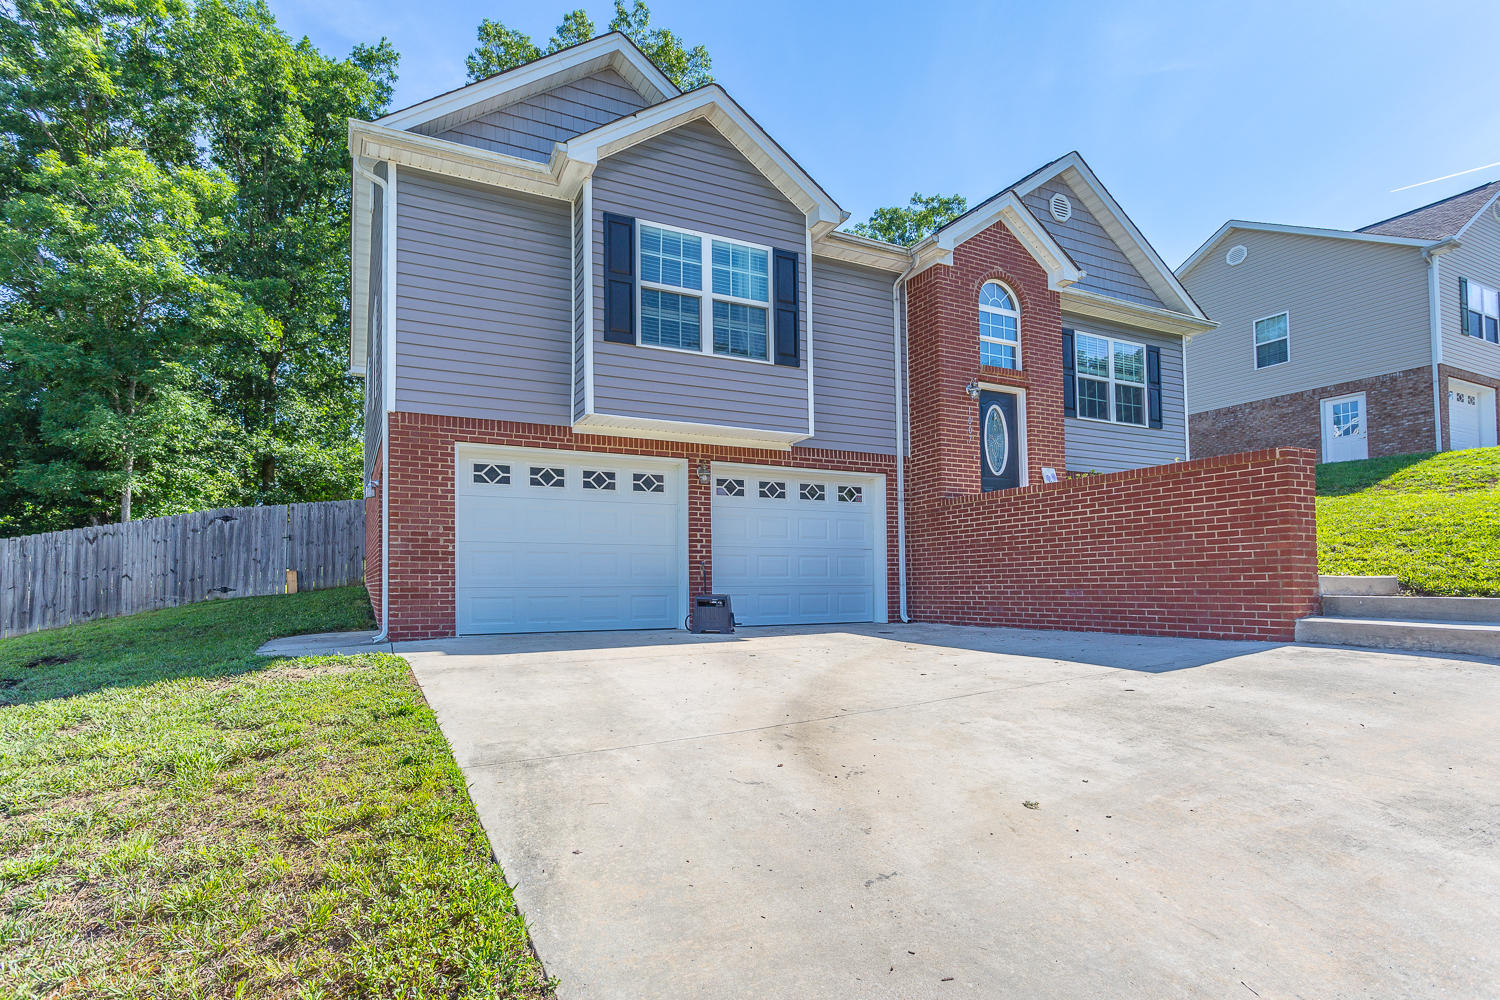 1007 Falcon Run Dr, Soddy Daisy, TN 37379